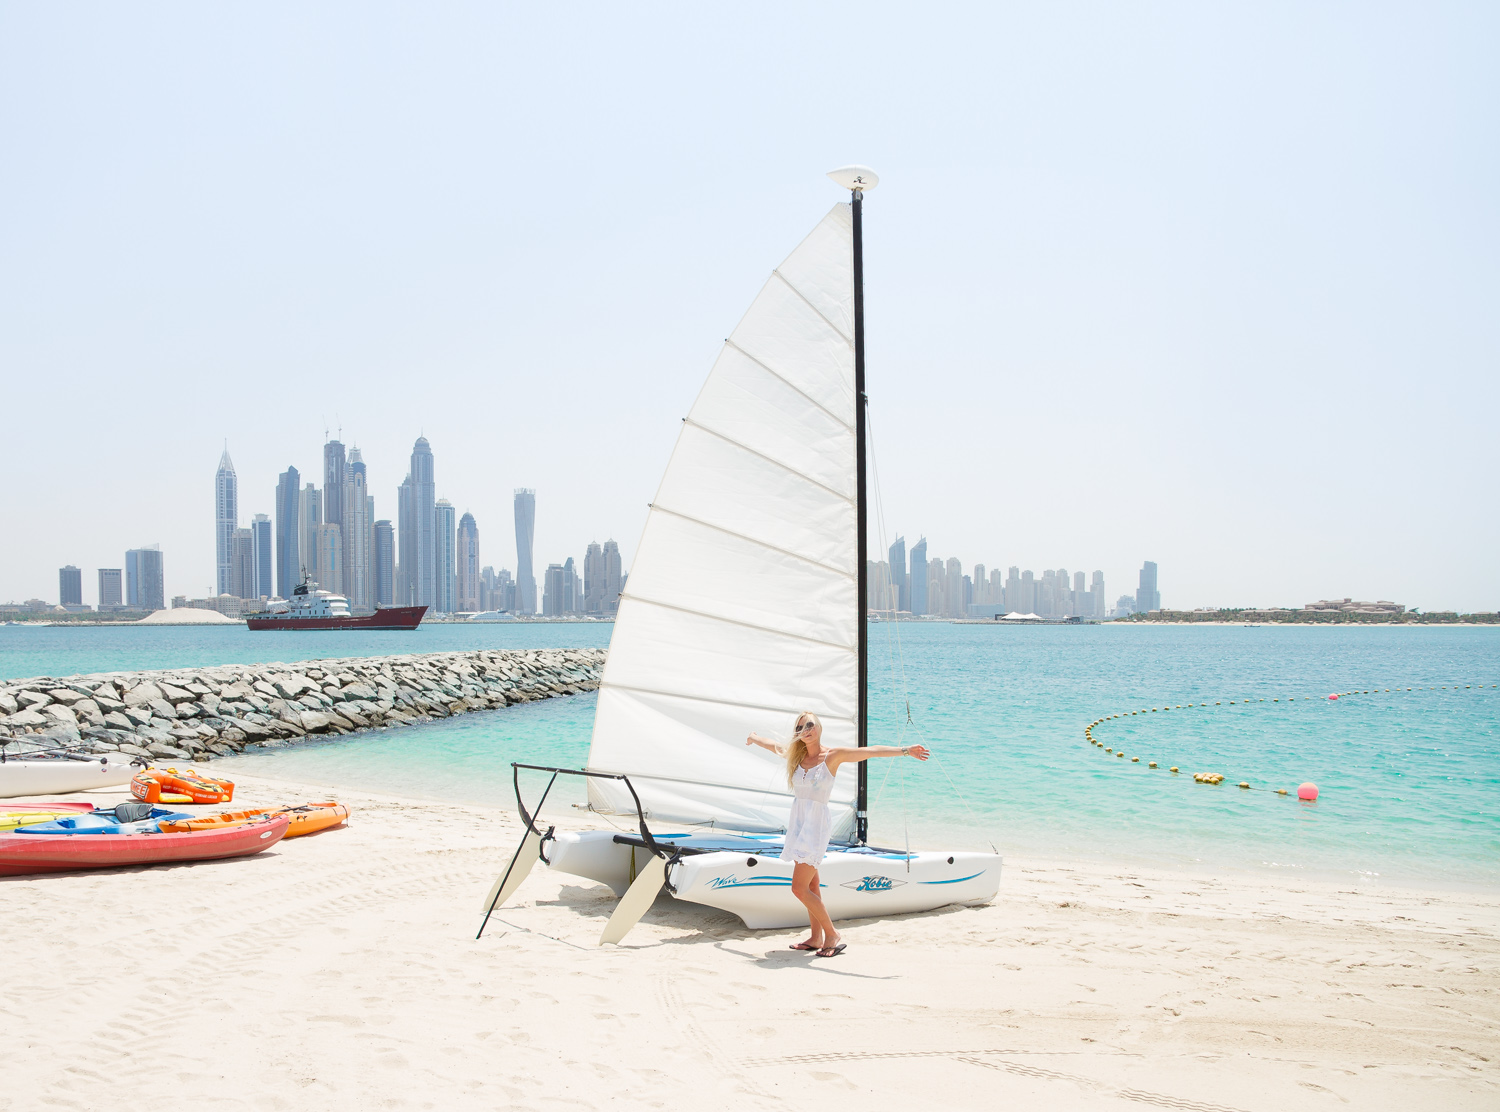 Christian-Schaffer-United-Arab-Emirates-Dubai-Beach.jpg